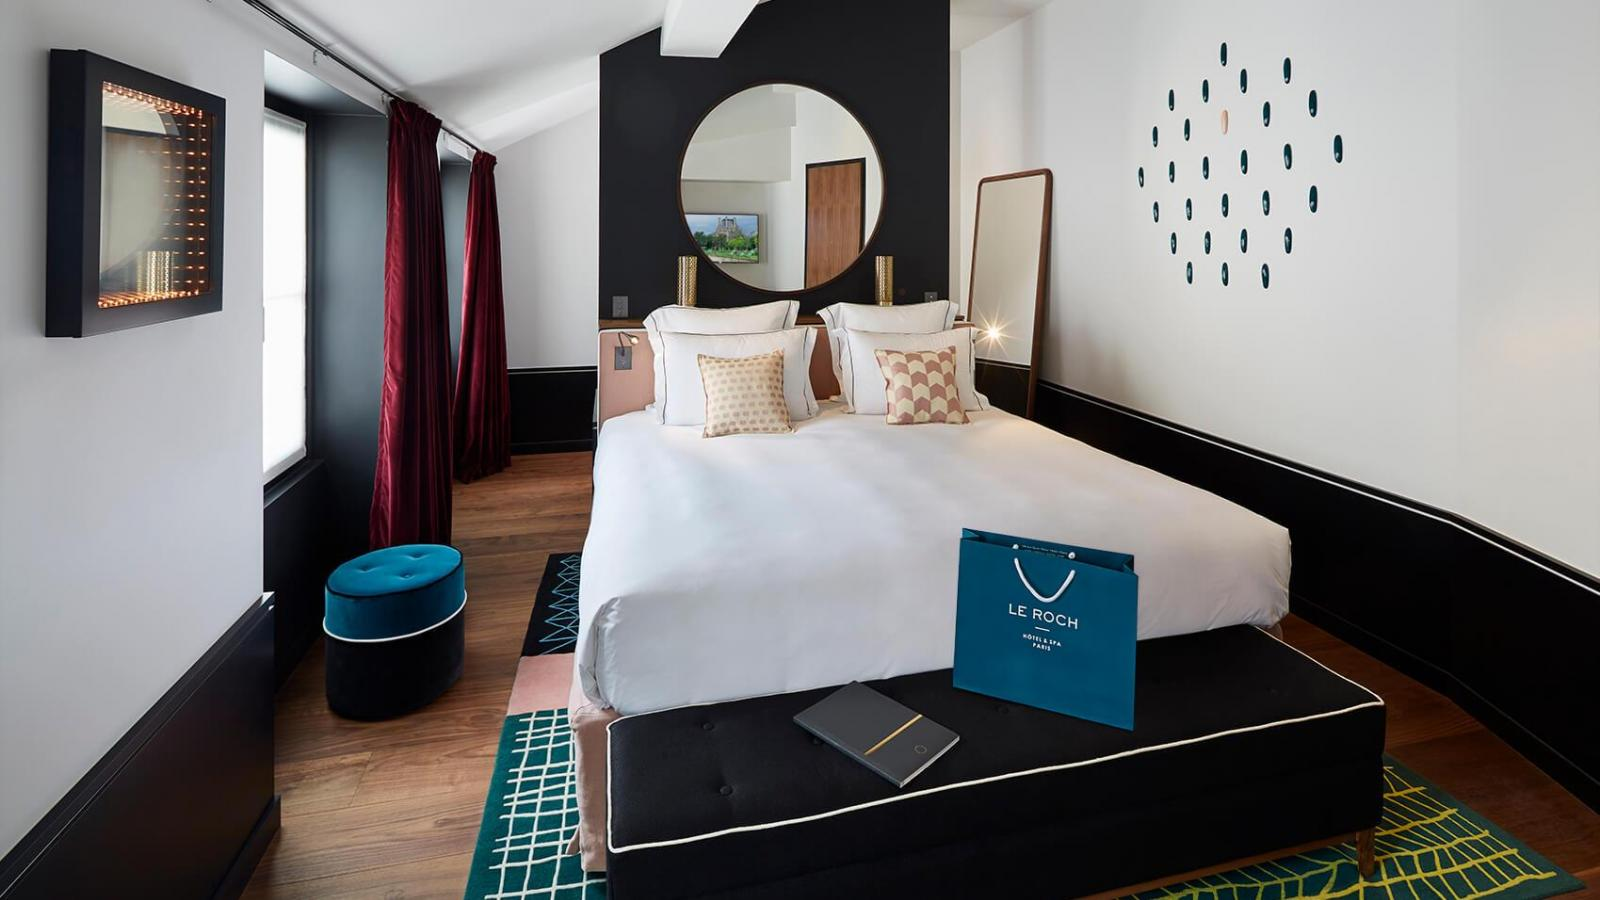 Current offers at the Roch Hôtel & Spa